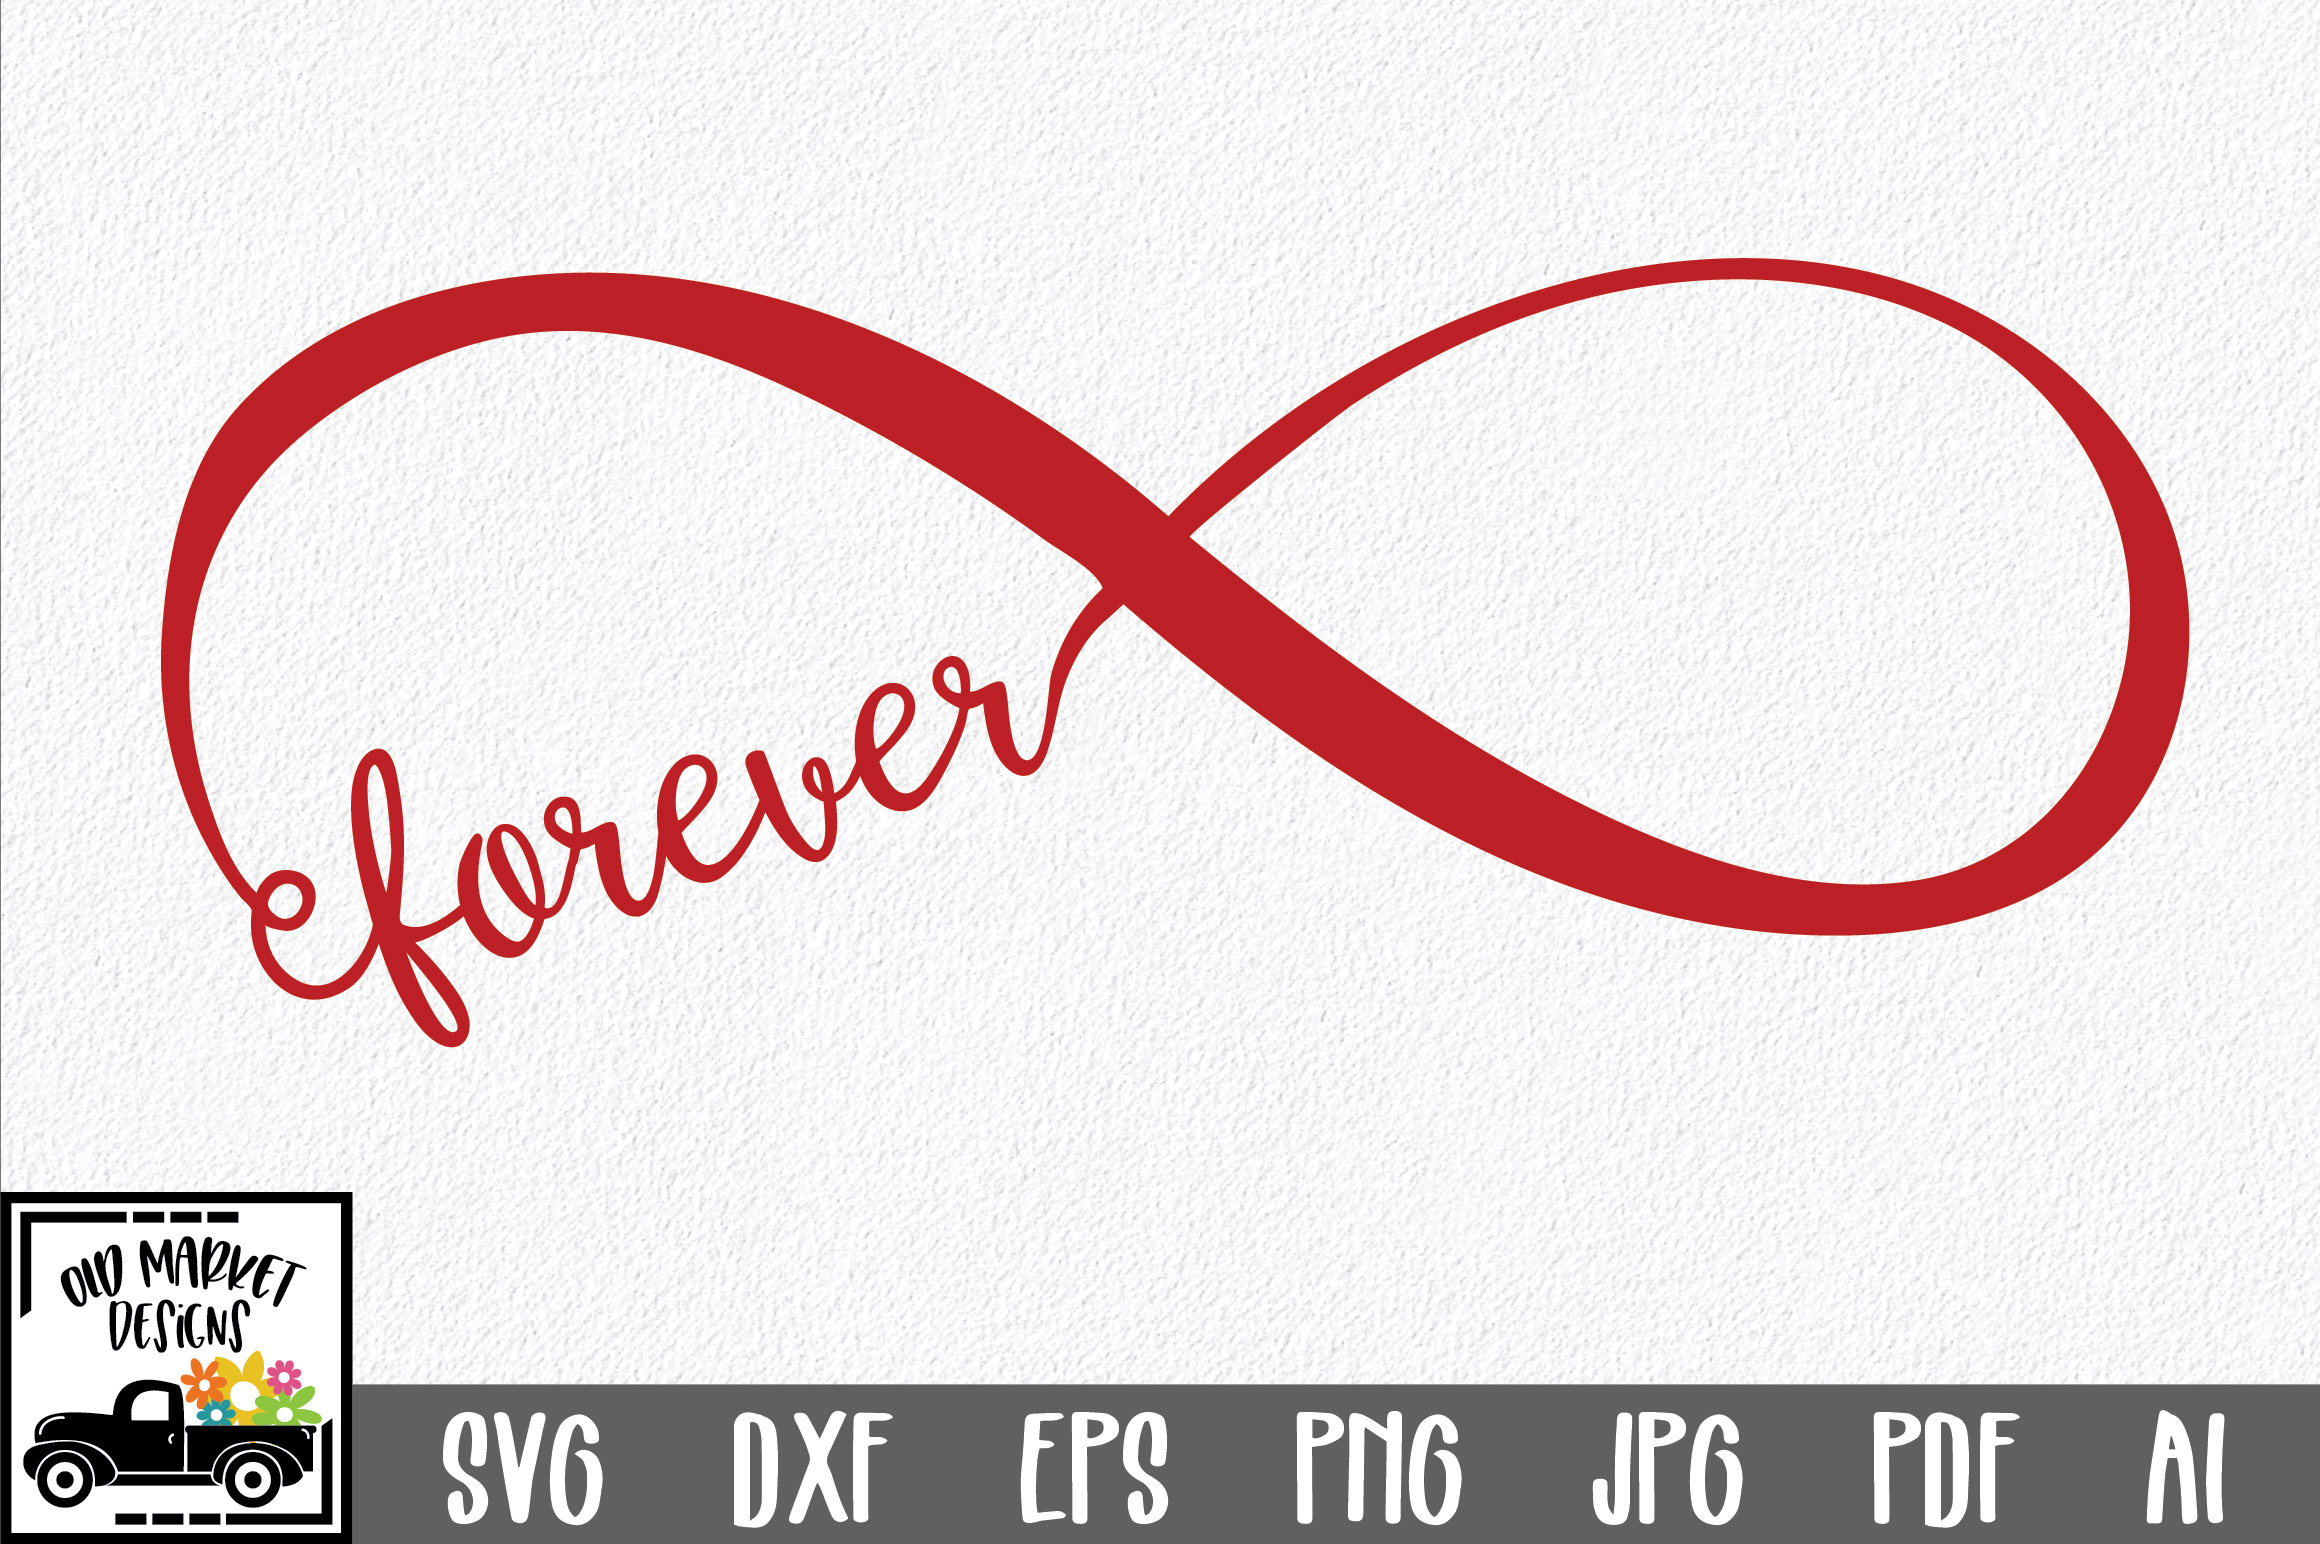 Download Free Forever Infinity Graphic By Oldmarketdesigns Creative Fabrica for Cricut Explore, Silhouette and other cutting machines.